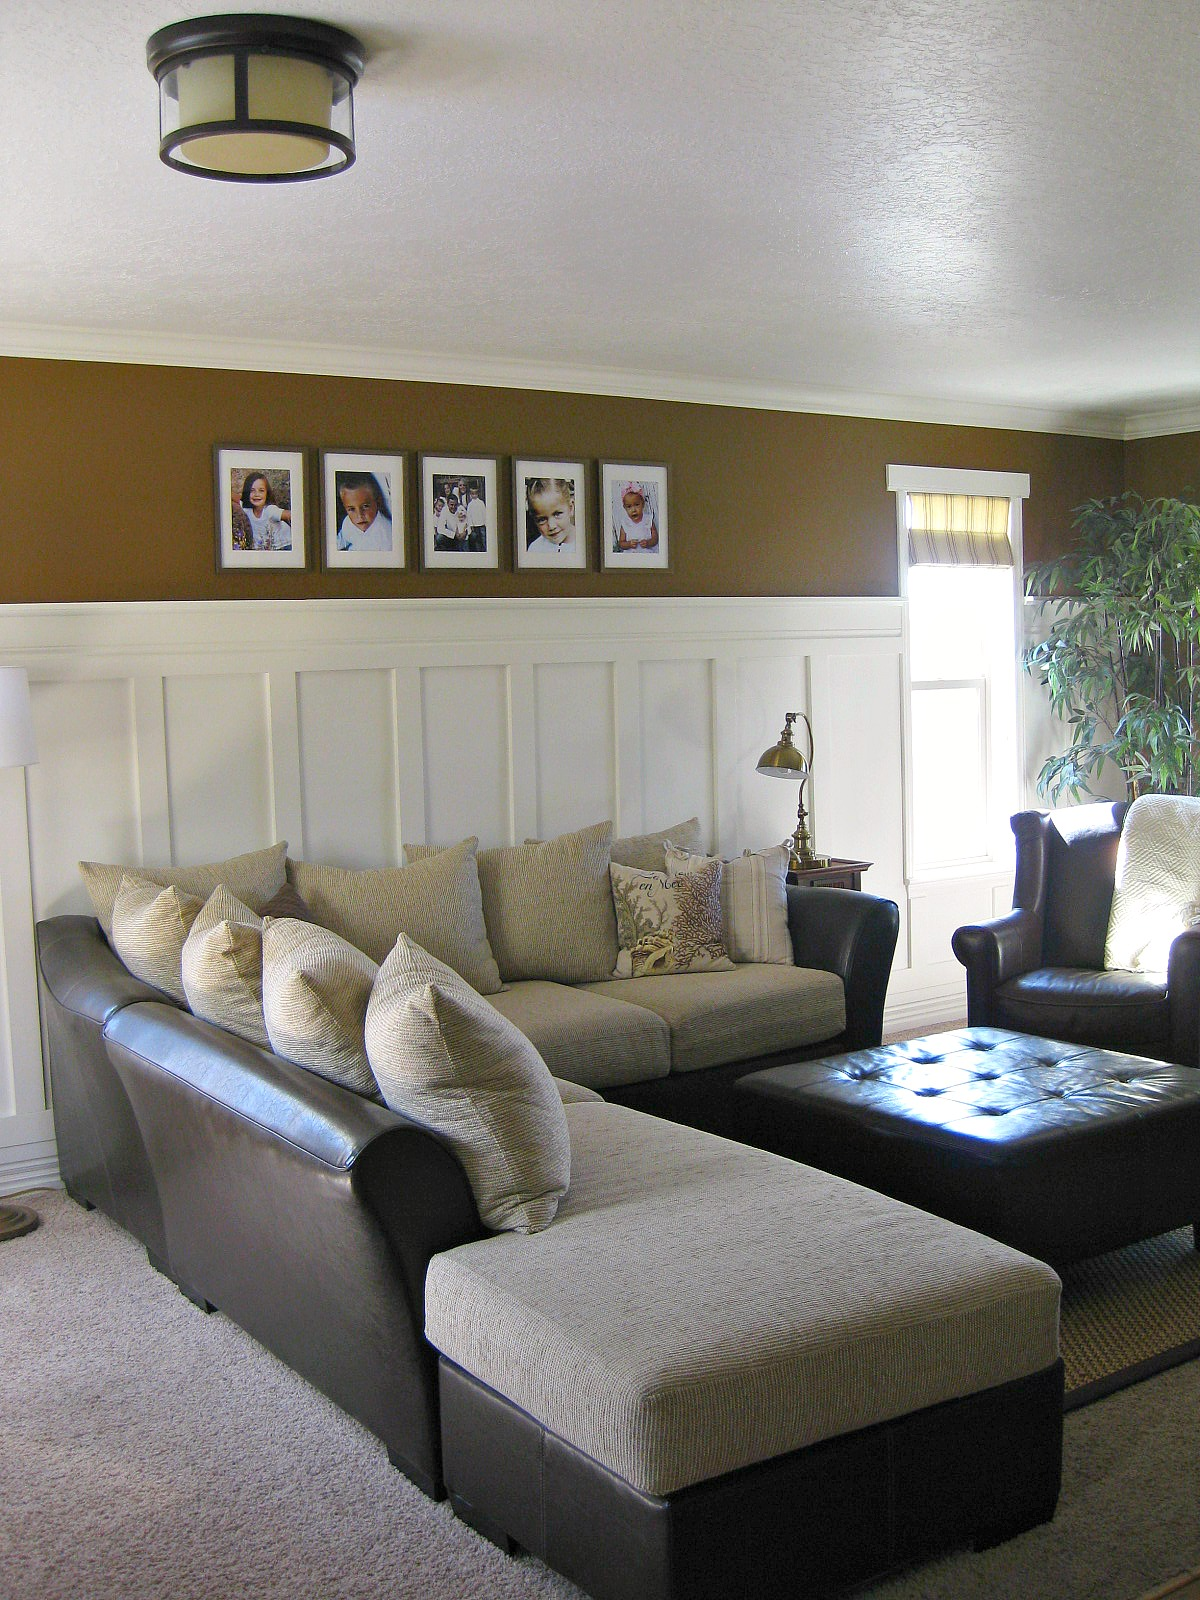 Living Room Wall: TDA Decorating And Design: Board & Batten Accent Wall Tutorial